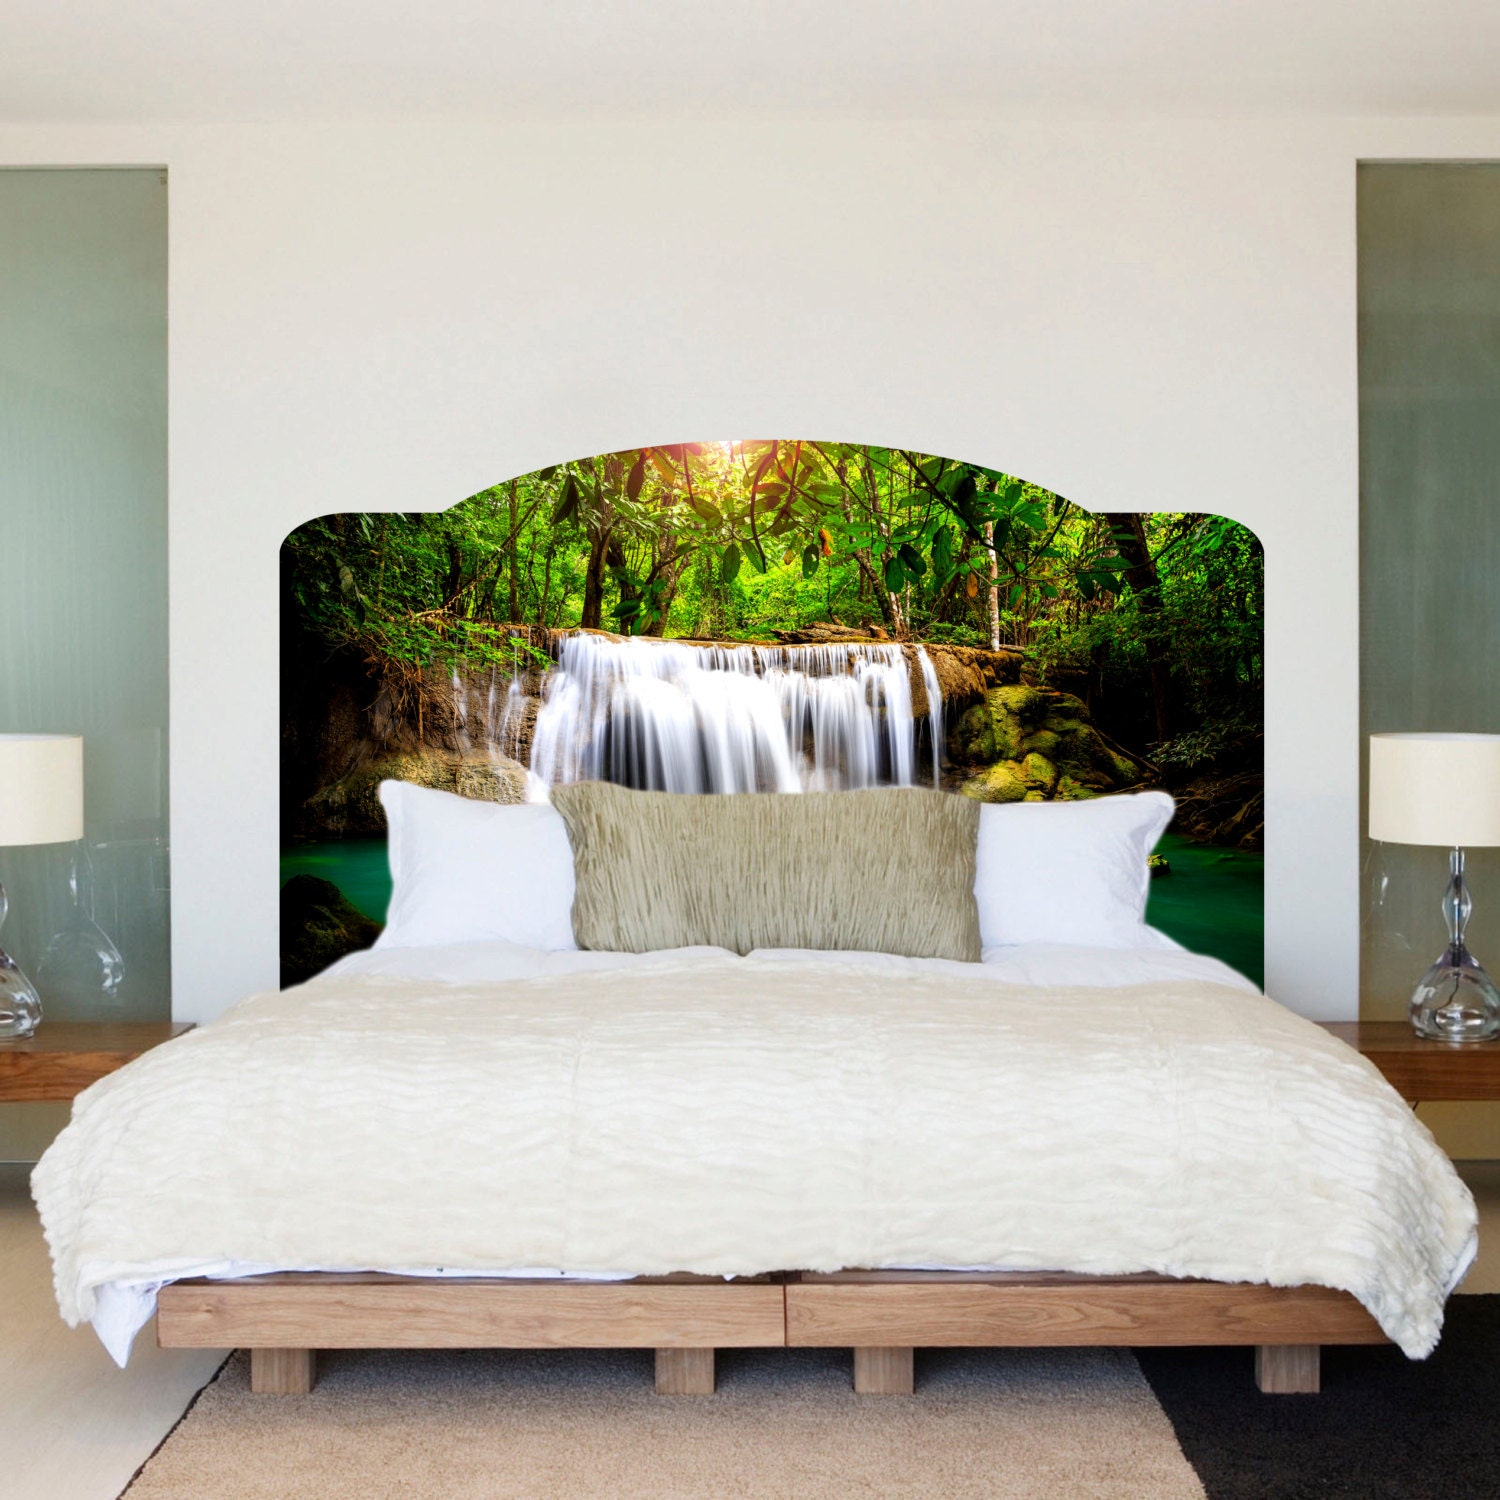 waterfall bed headboard wall mural waterfall headboard art ForMural Headboard